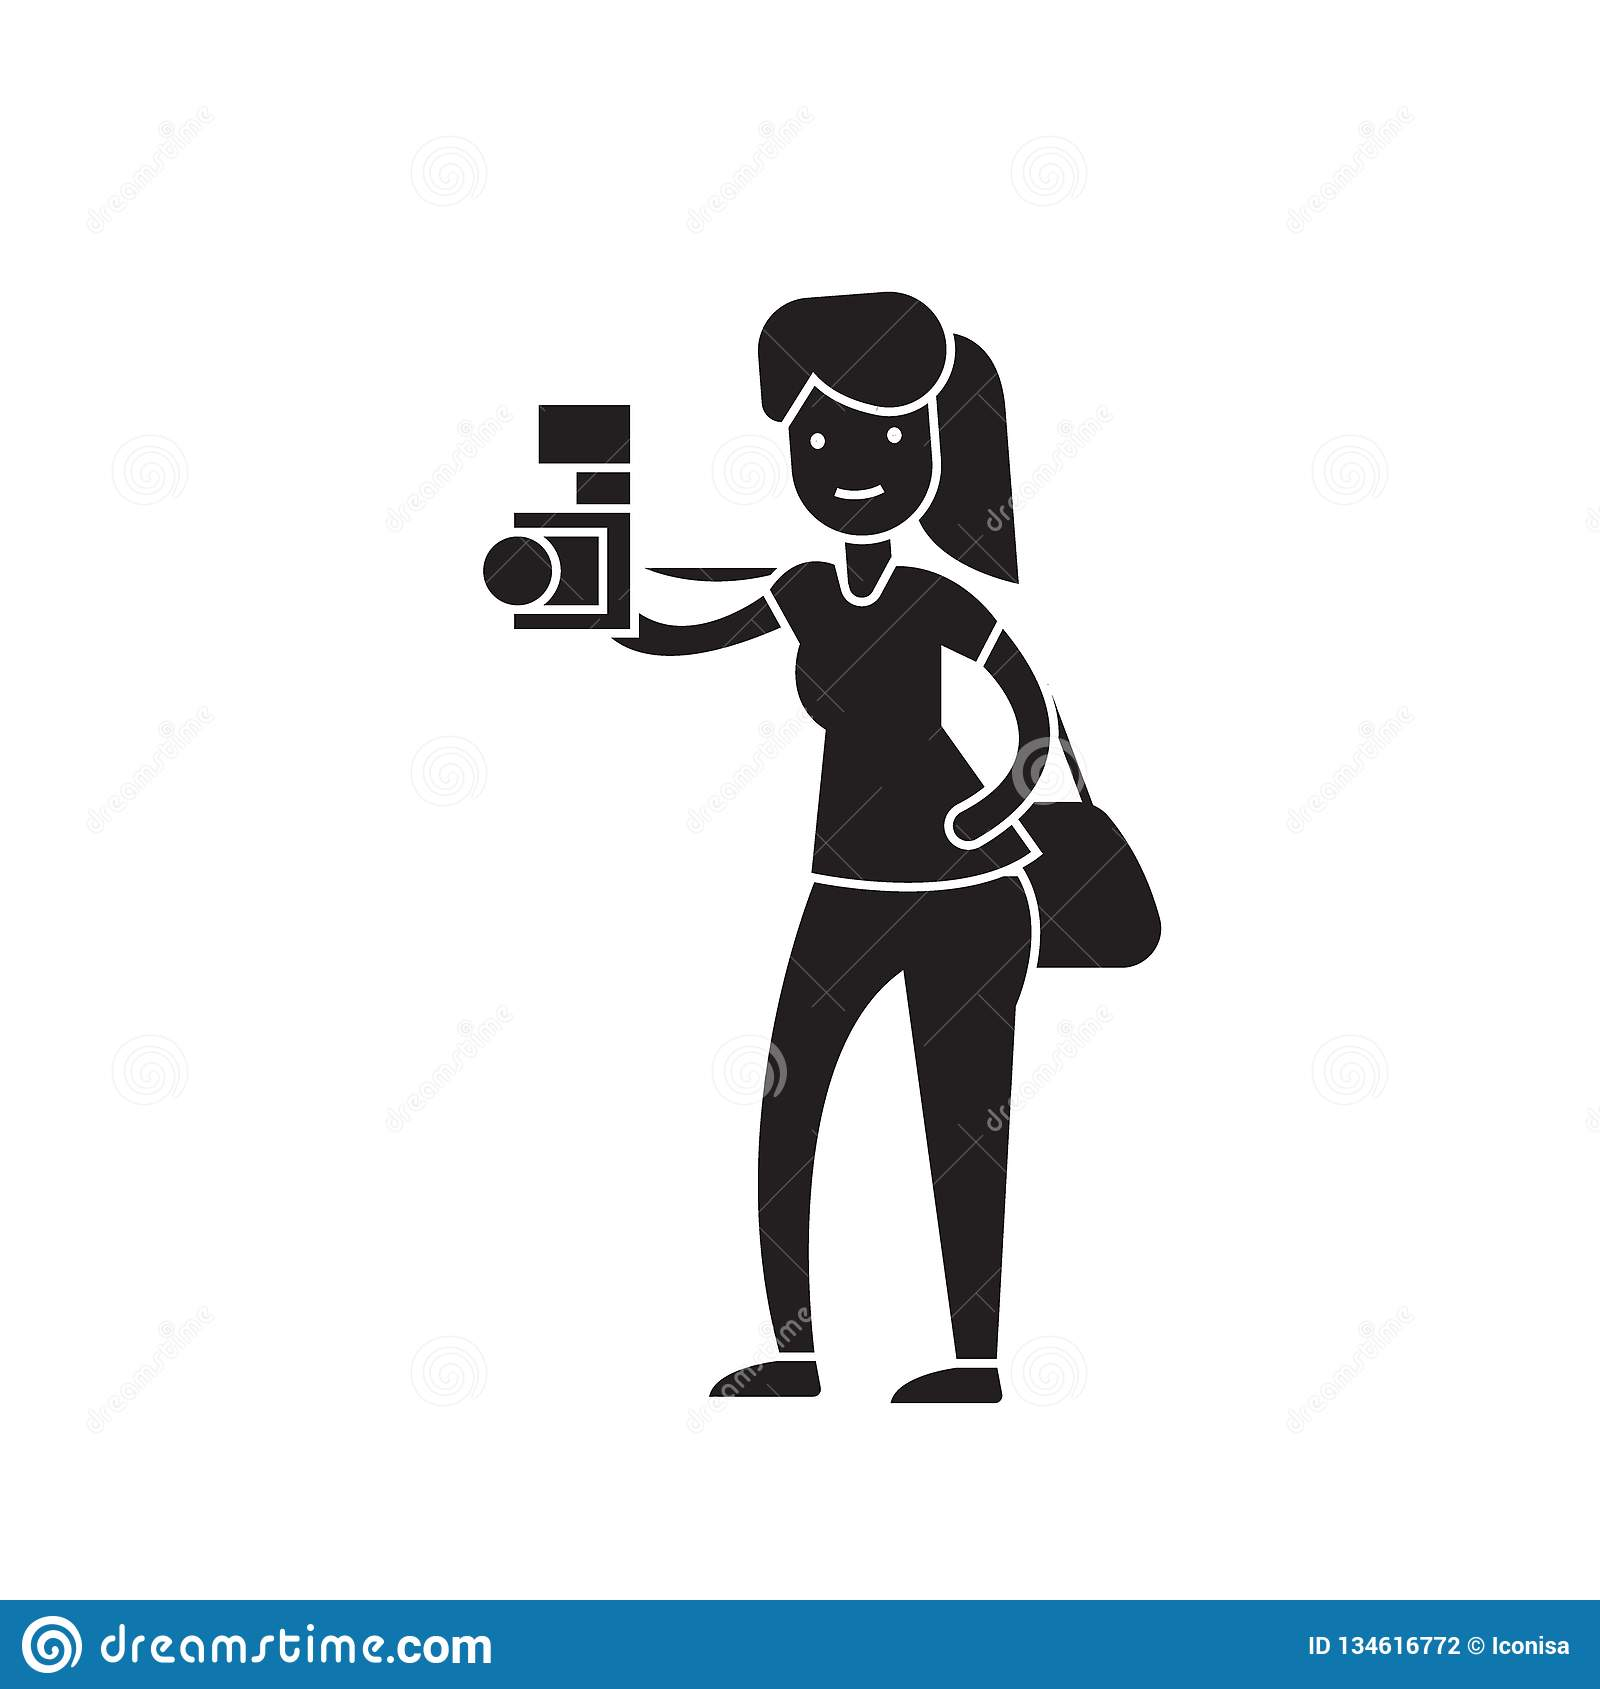 Woman taking a picture black vector concept icon. Woman taking a picture flat illustration, sign